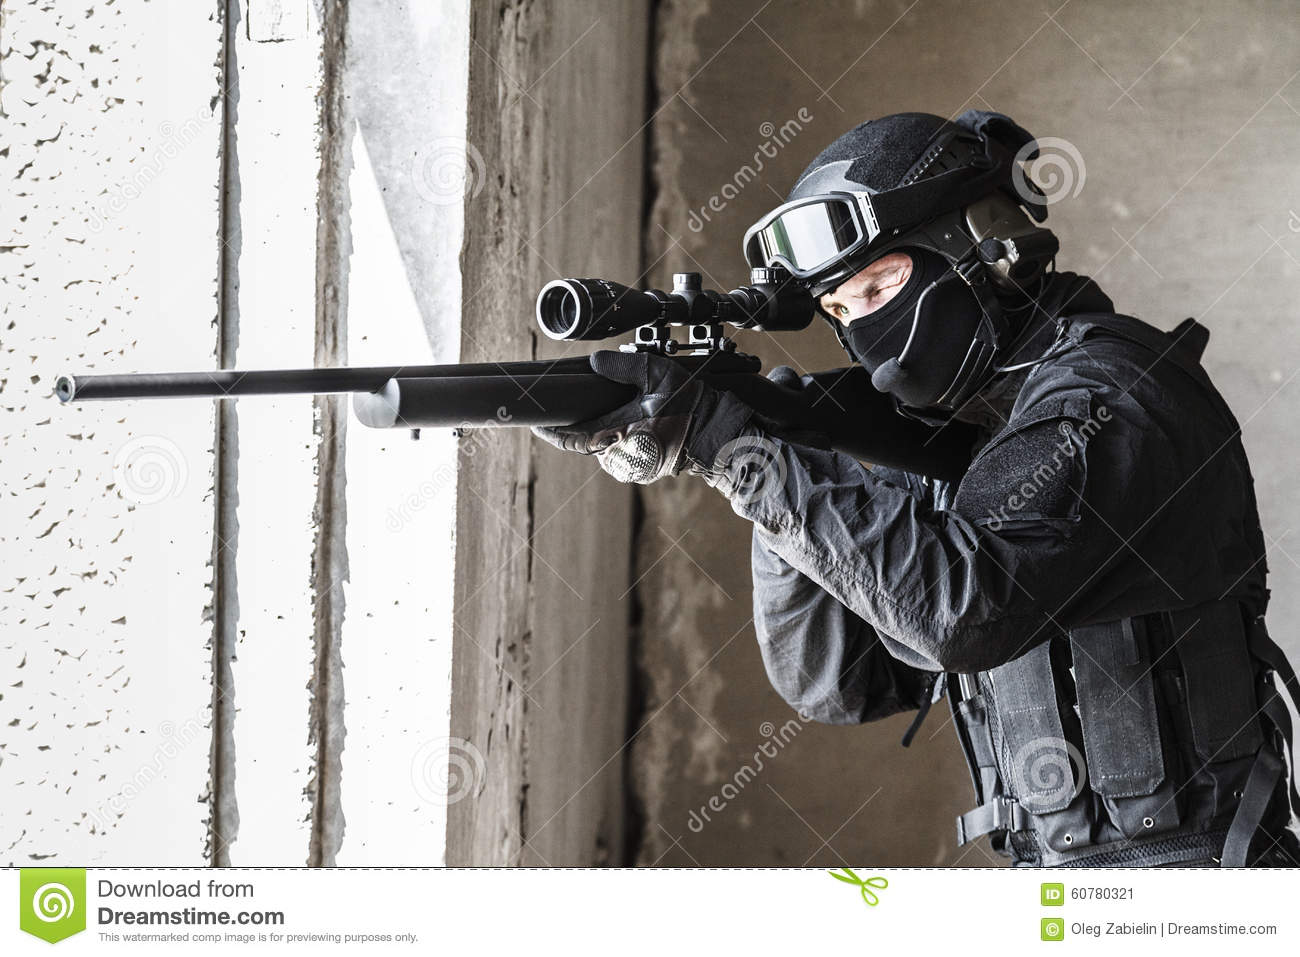 Police Officer Swat In Action Stock Image Image Of Hazard Anti